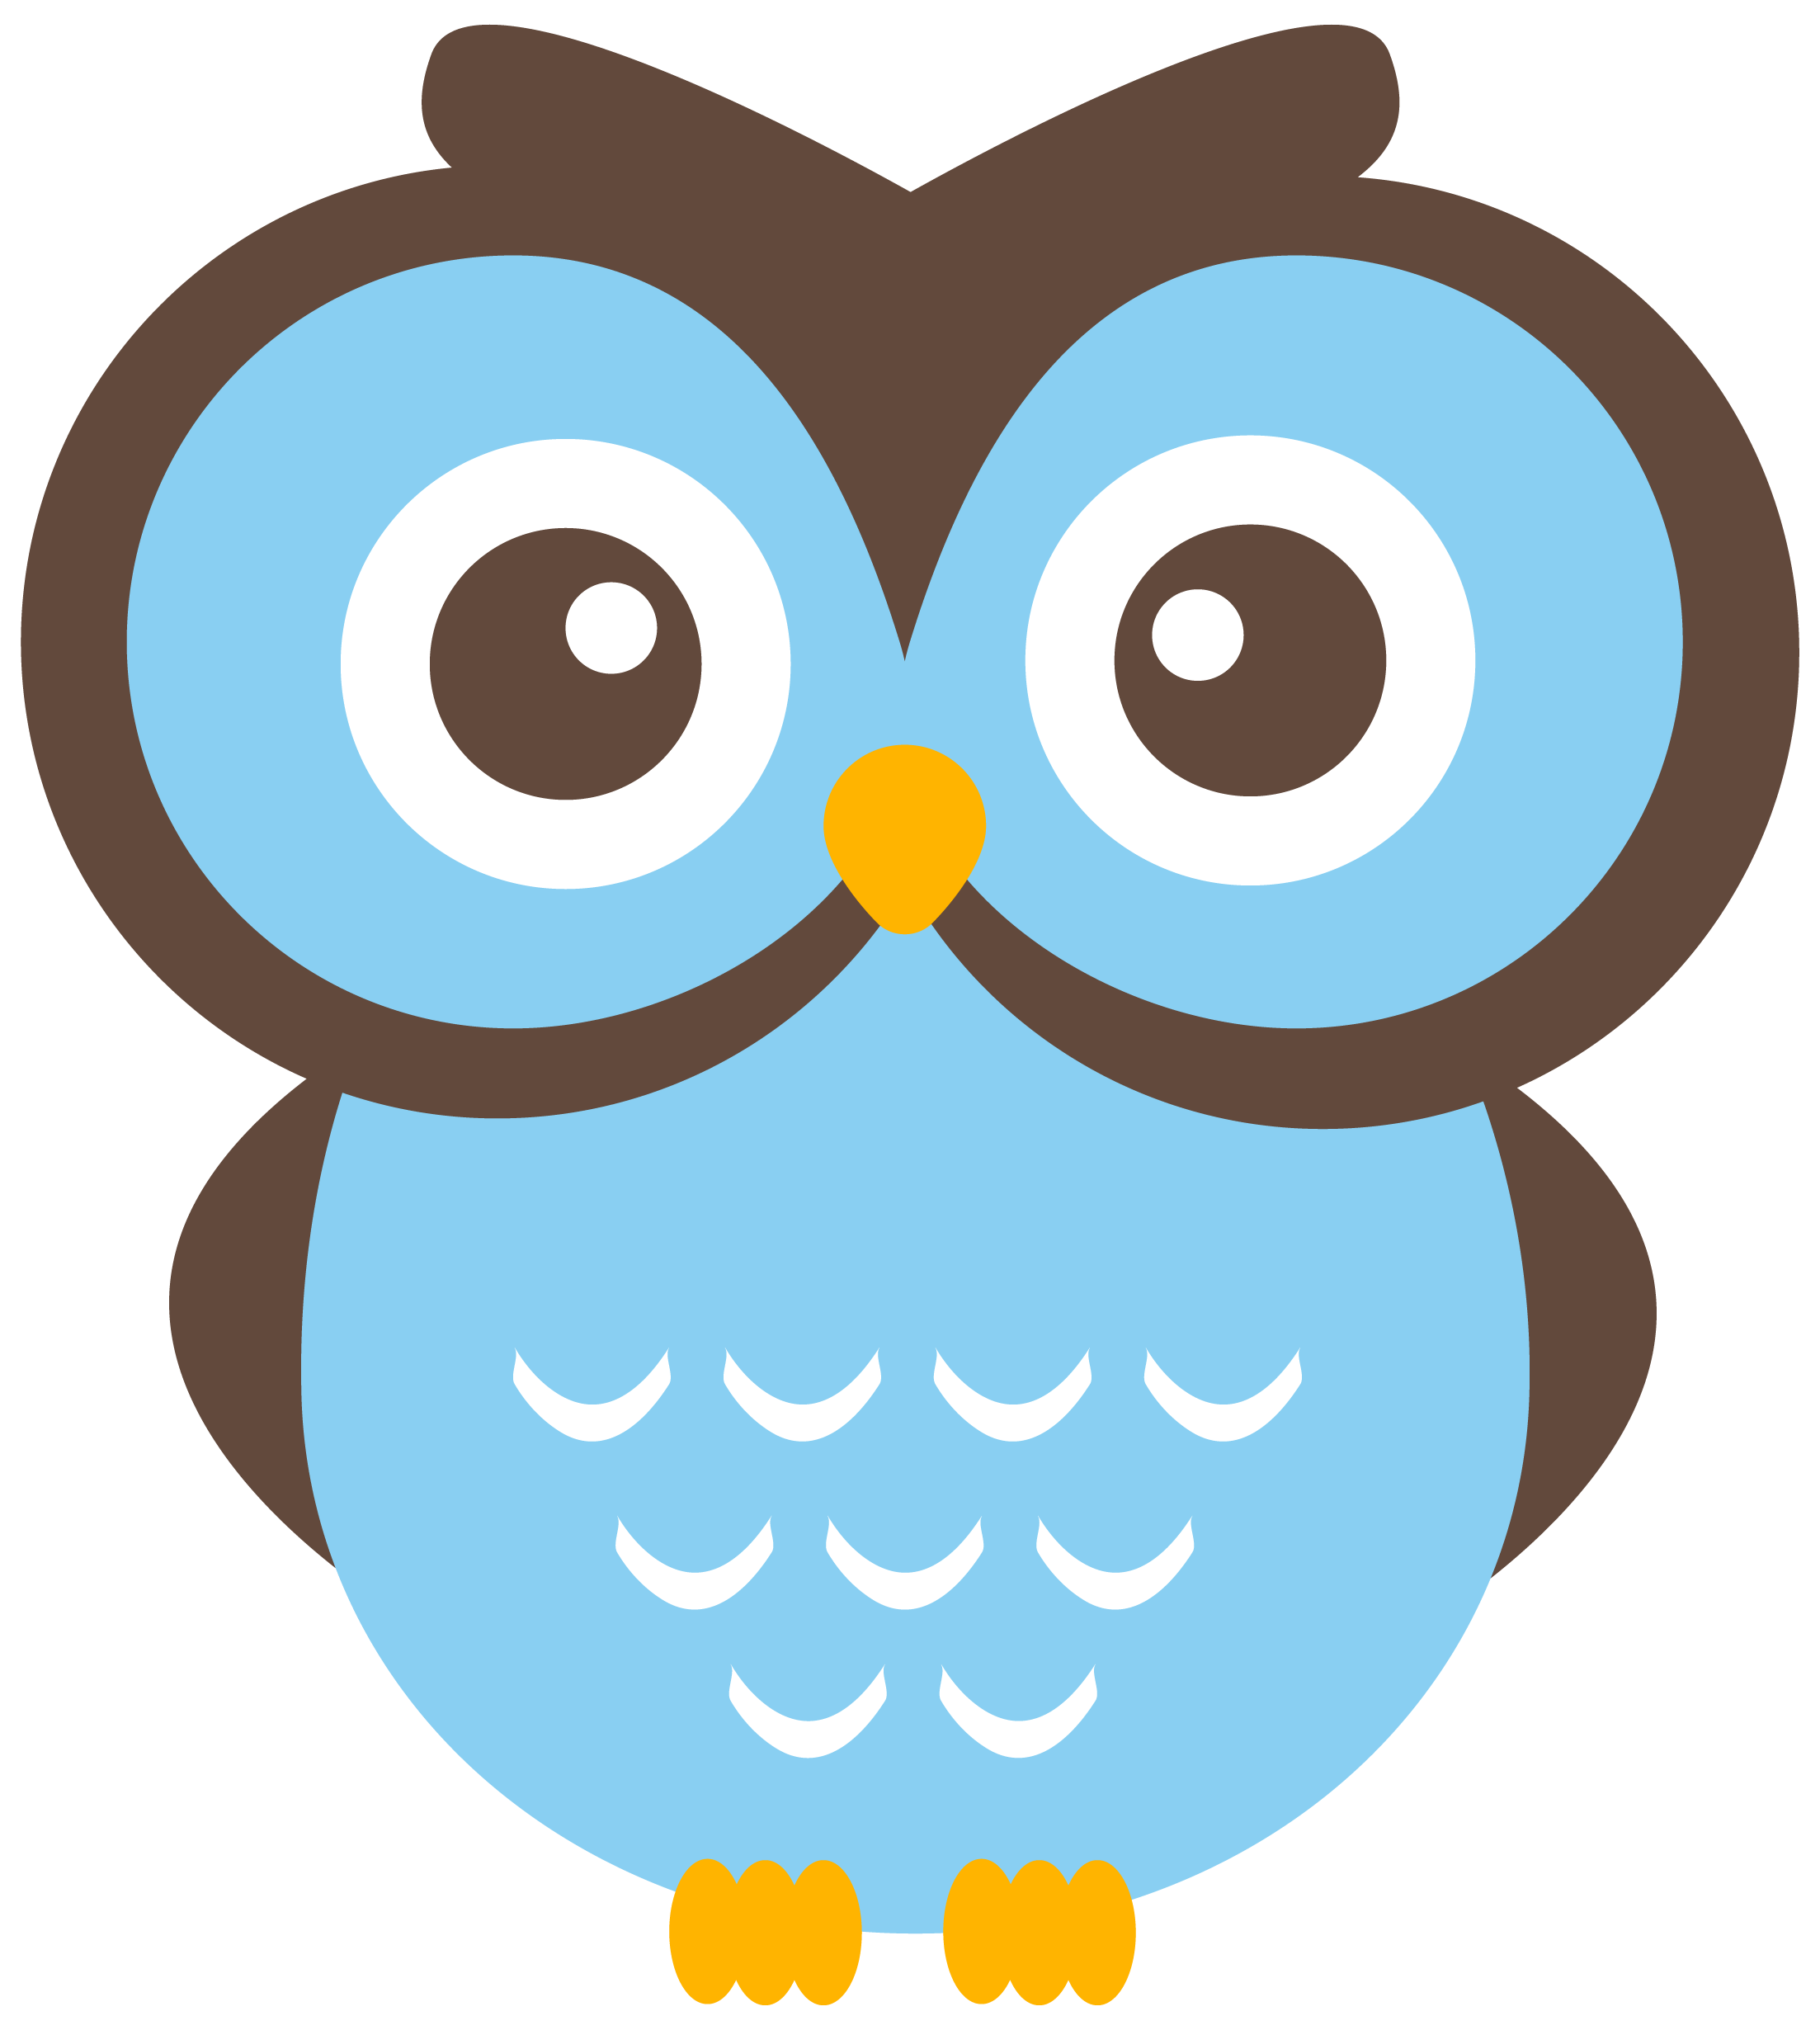 Free cartoon owl clipart image-Free cartoon owl clipart image-8